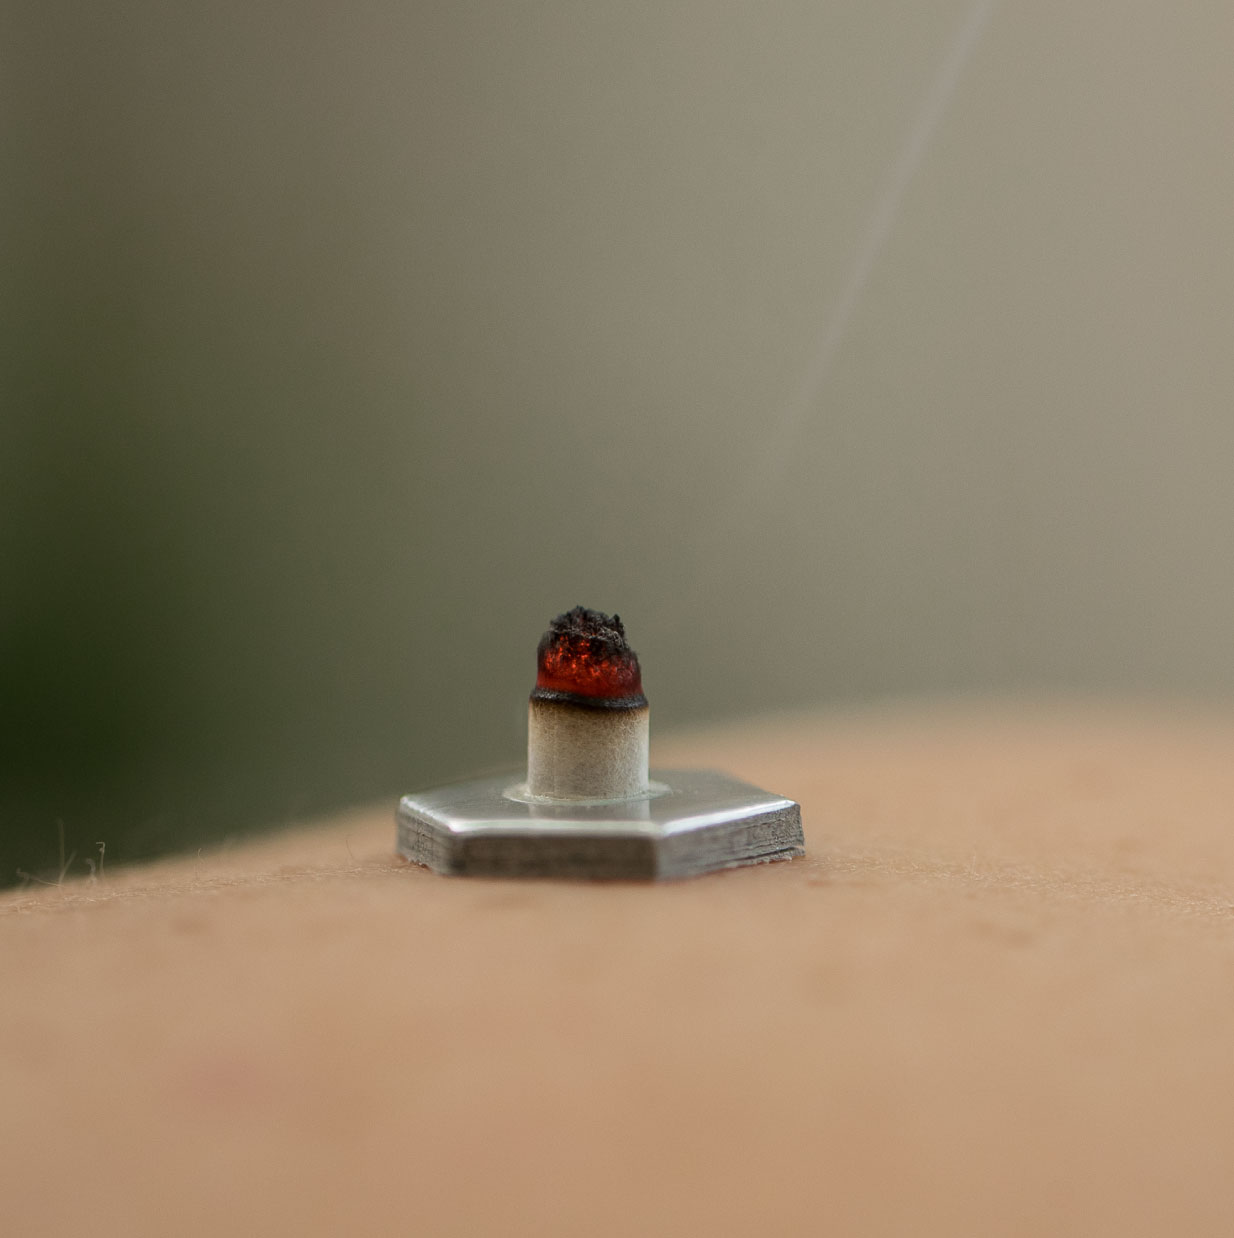 Moxibustion - Moxibustion is a treatment using an herb called mugwort (Ai Ye). It helps relieve muscle tension and promote circulation. It can also help boost immunity and help treat infertility.